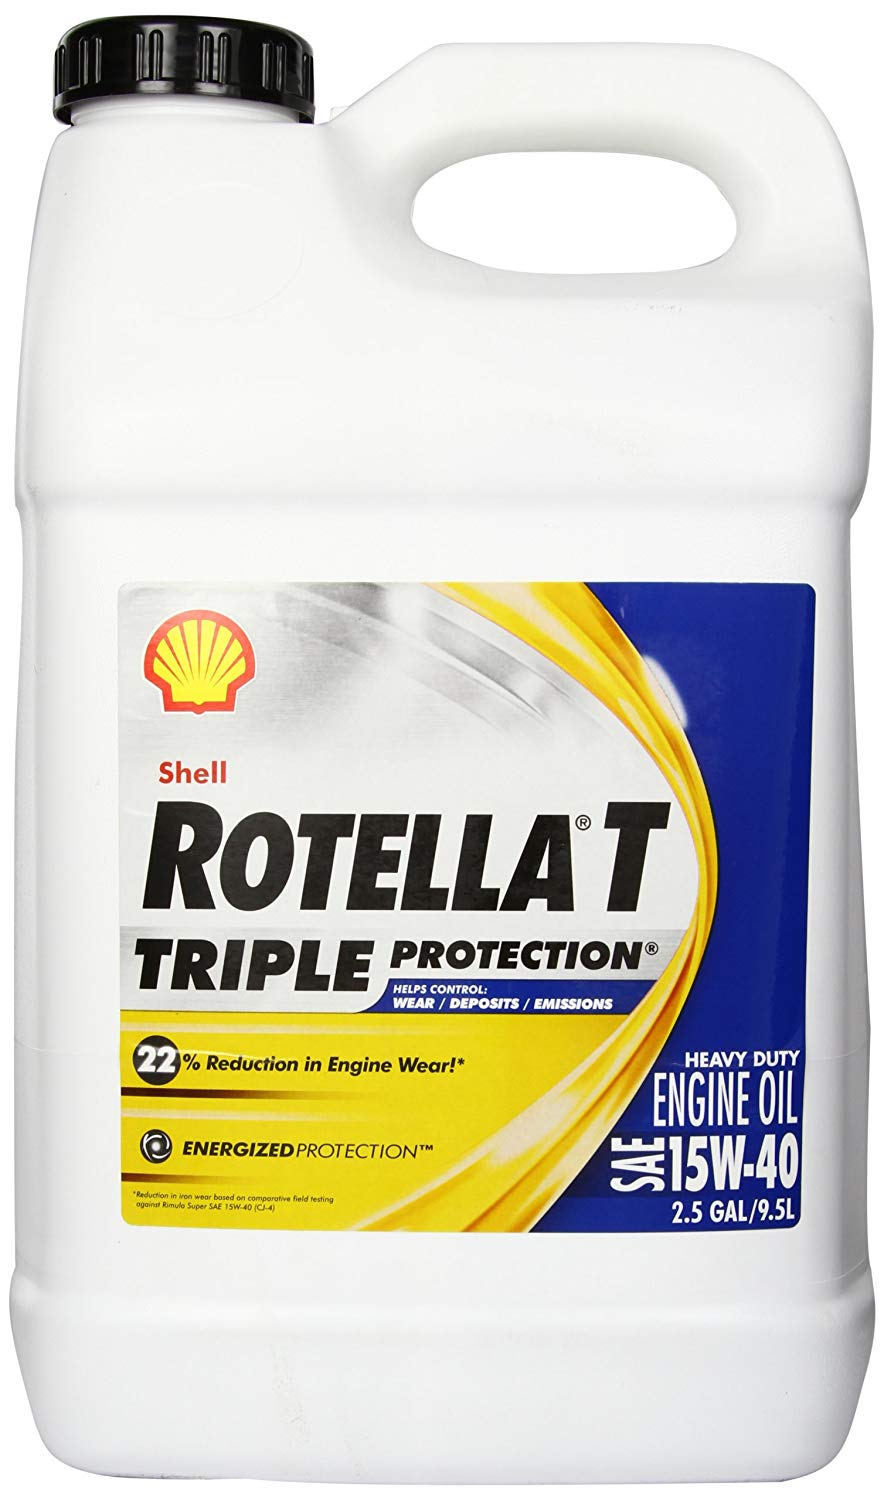 Motor Oil  Rotella T  Triple Protection 15W-40 Shell